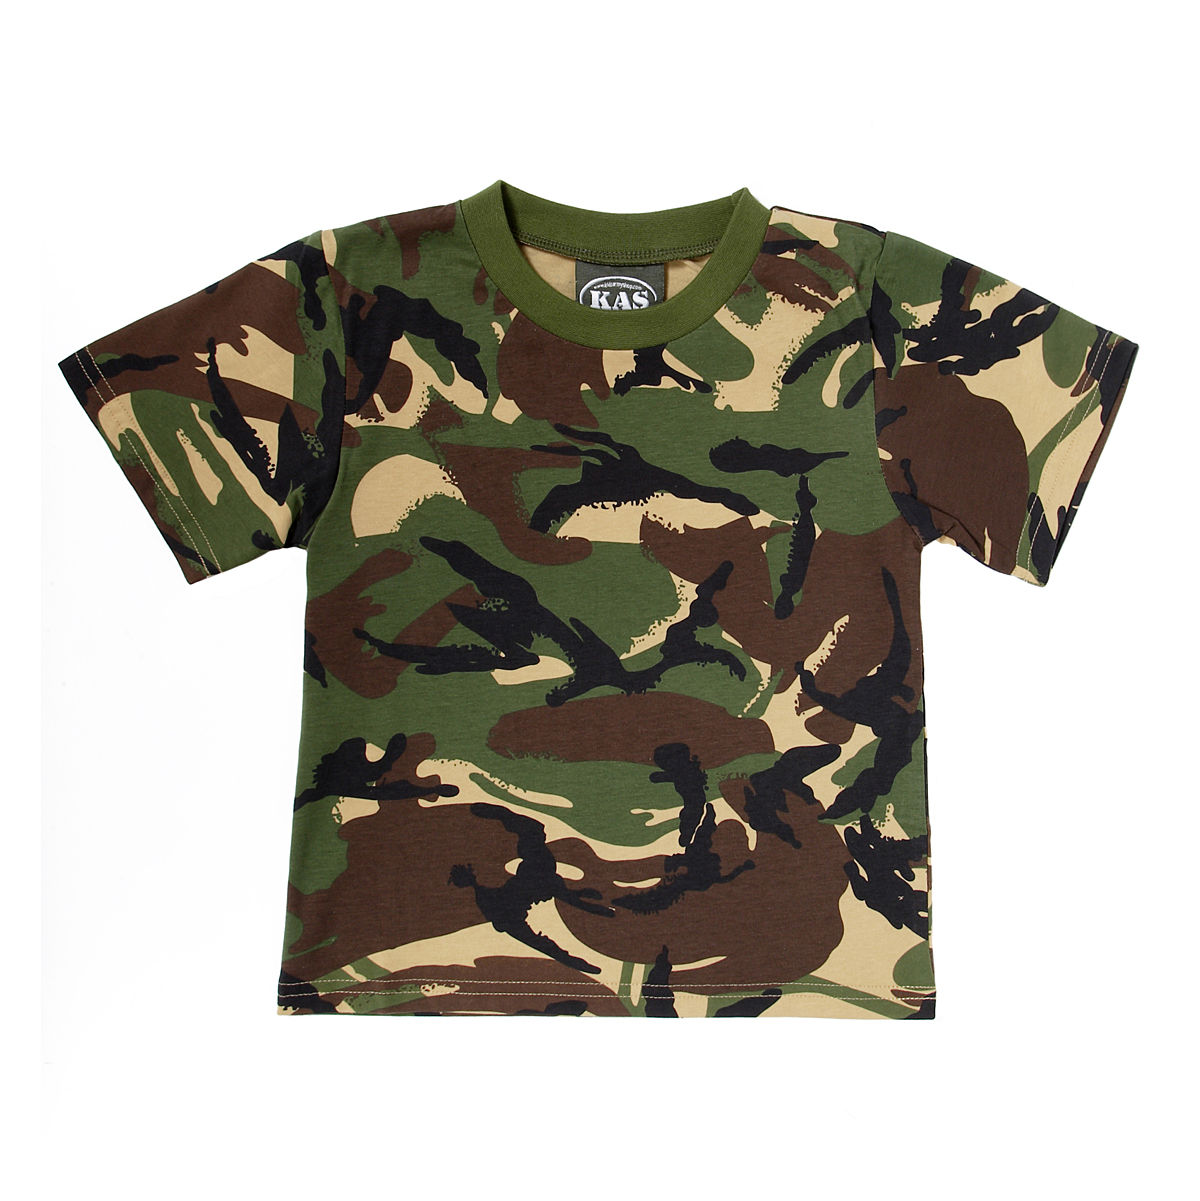 056e2ac6 Kids Camouflage T-Shirt | 100% Cotton | Kids Army Shop